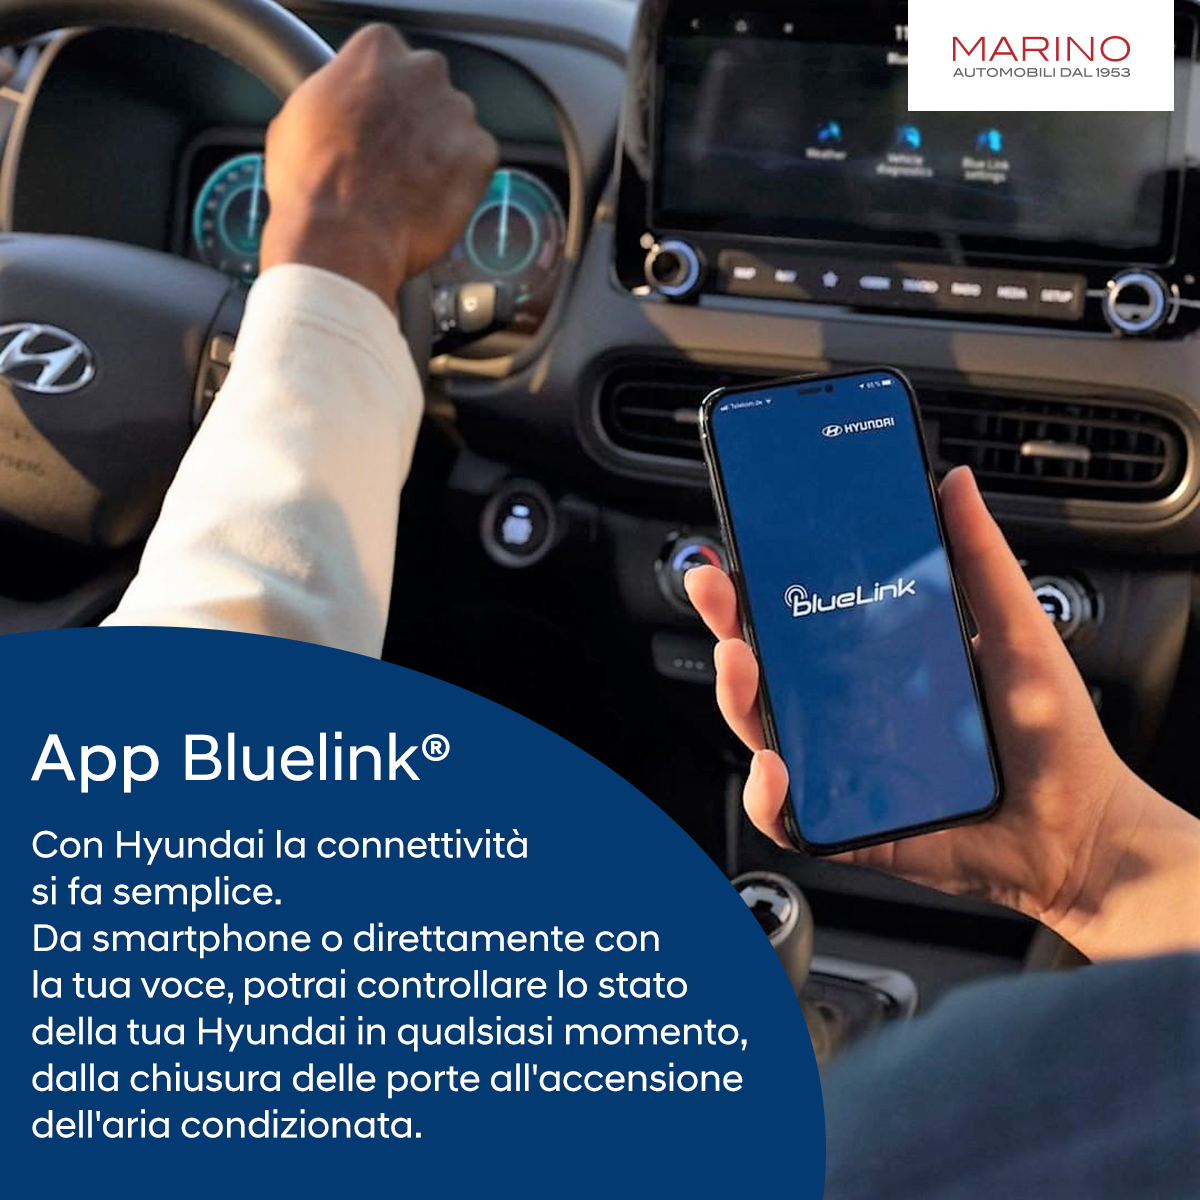 Come funziona Hyundai App Bluelink? [VIDEO]